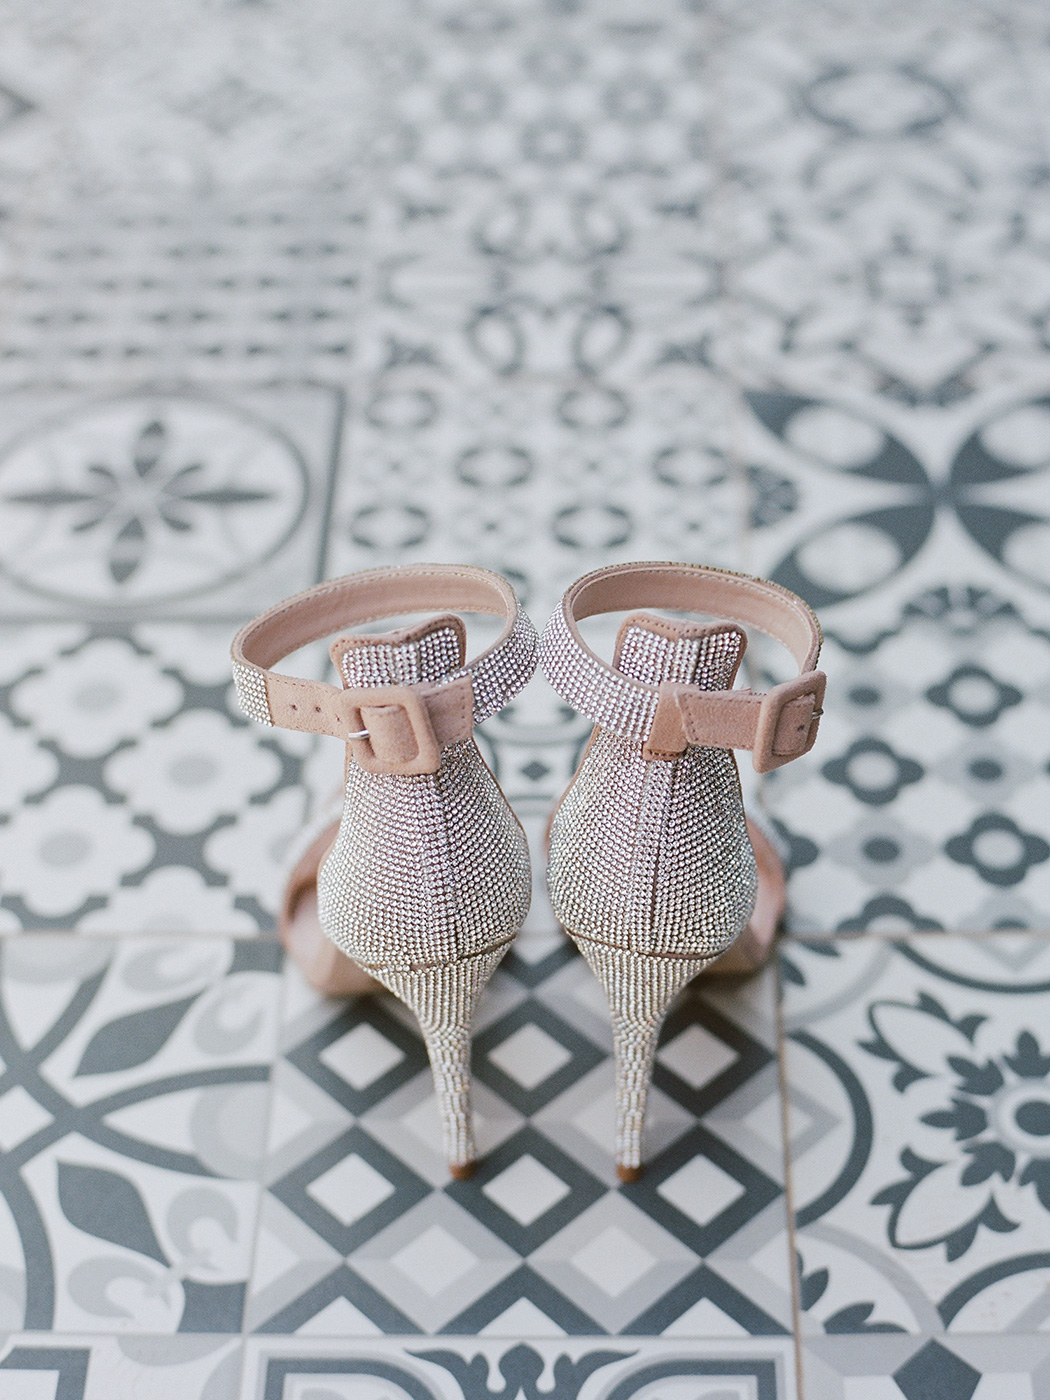 Bridal Shoes | Rensche Mari Photography